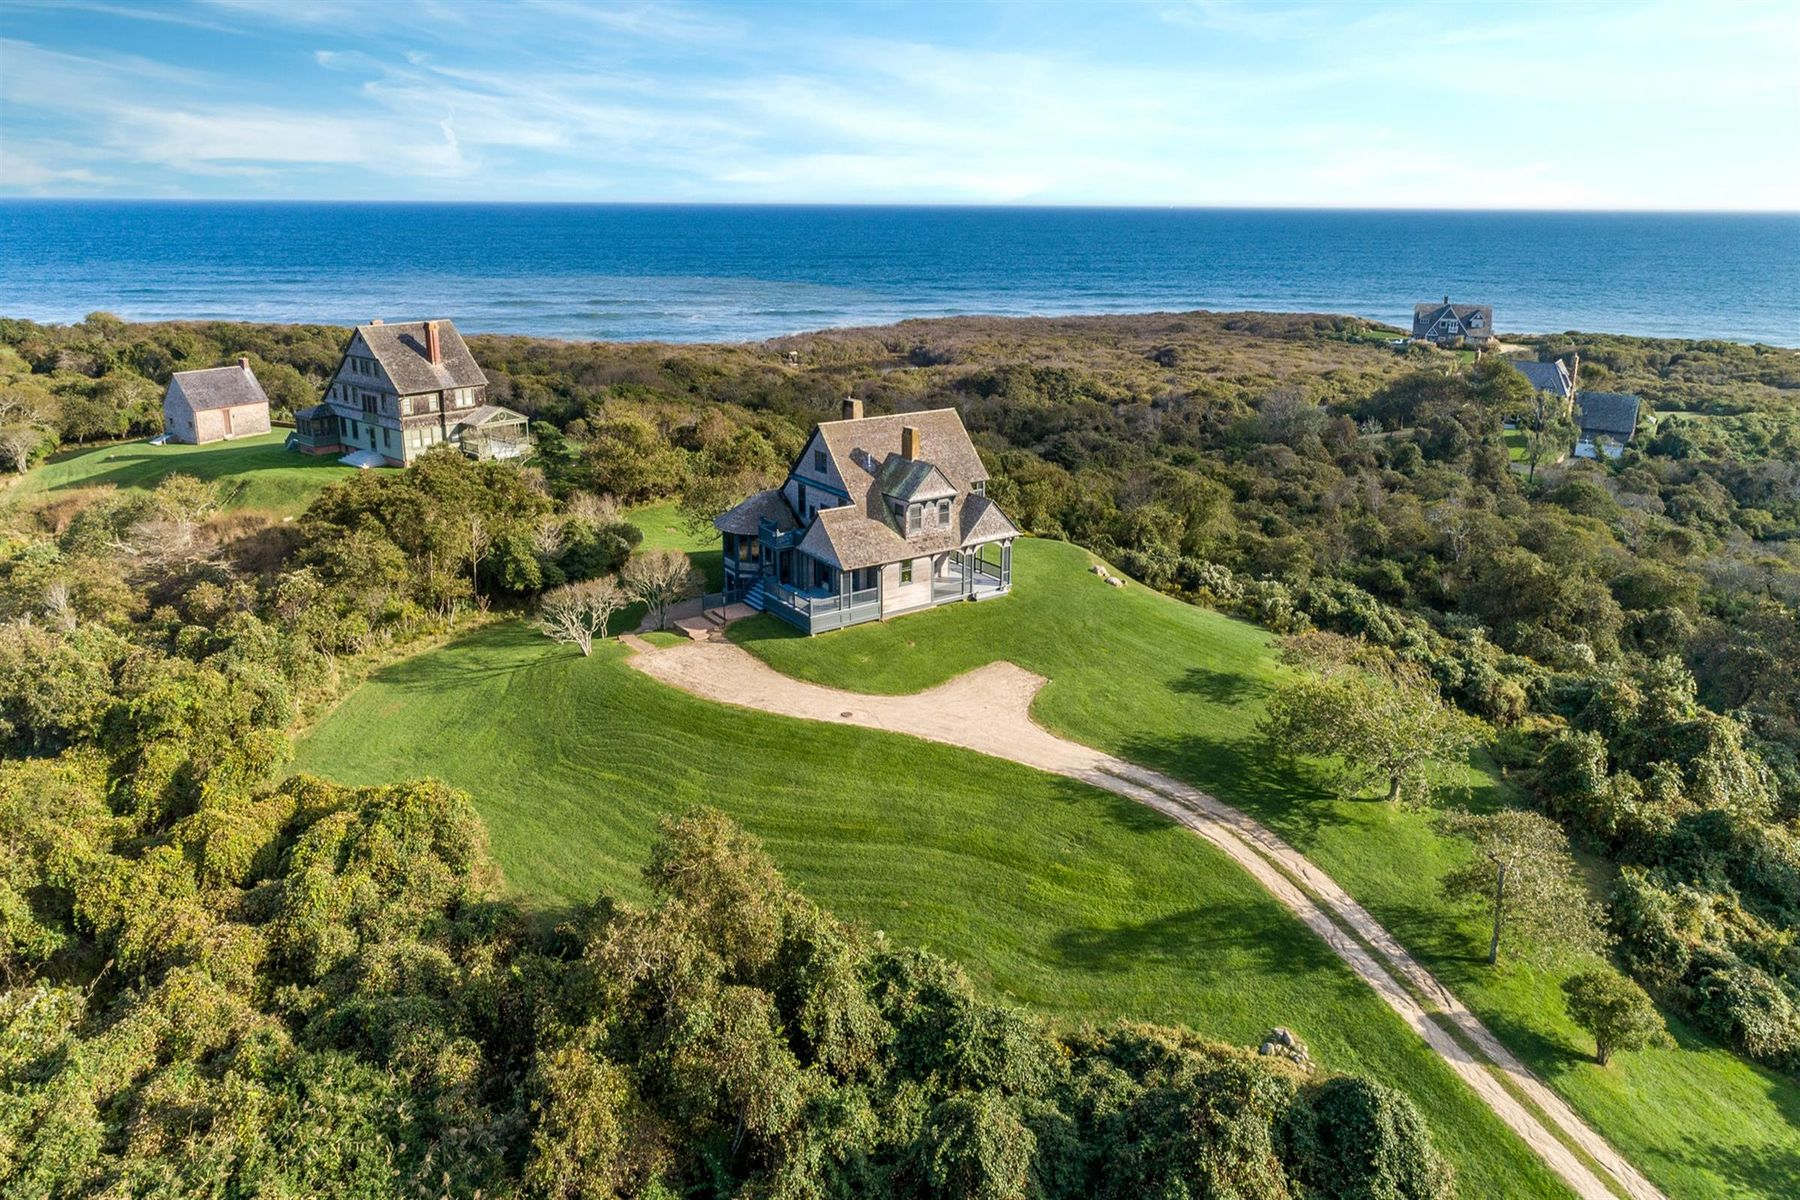 Single Family Homes for Active at Stanford White Ocean View Cottage 153 Deforest Road Montauk, New York 11954 United States